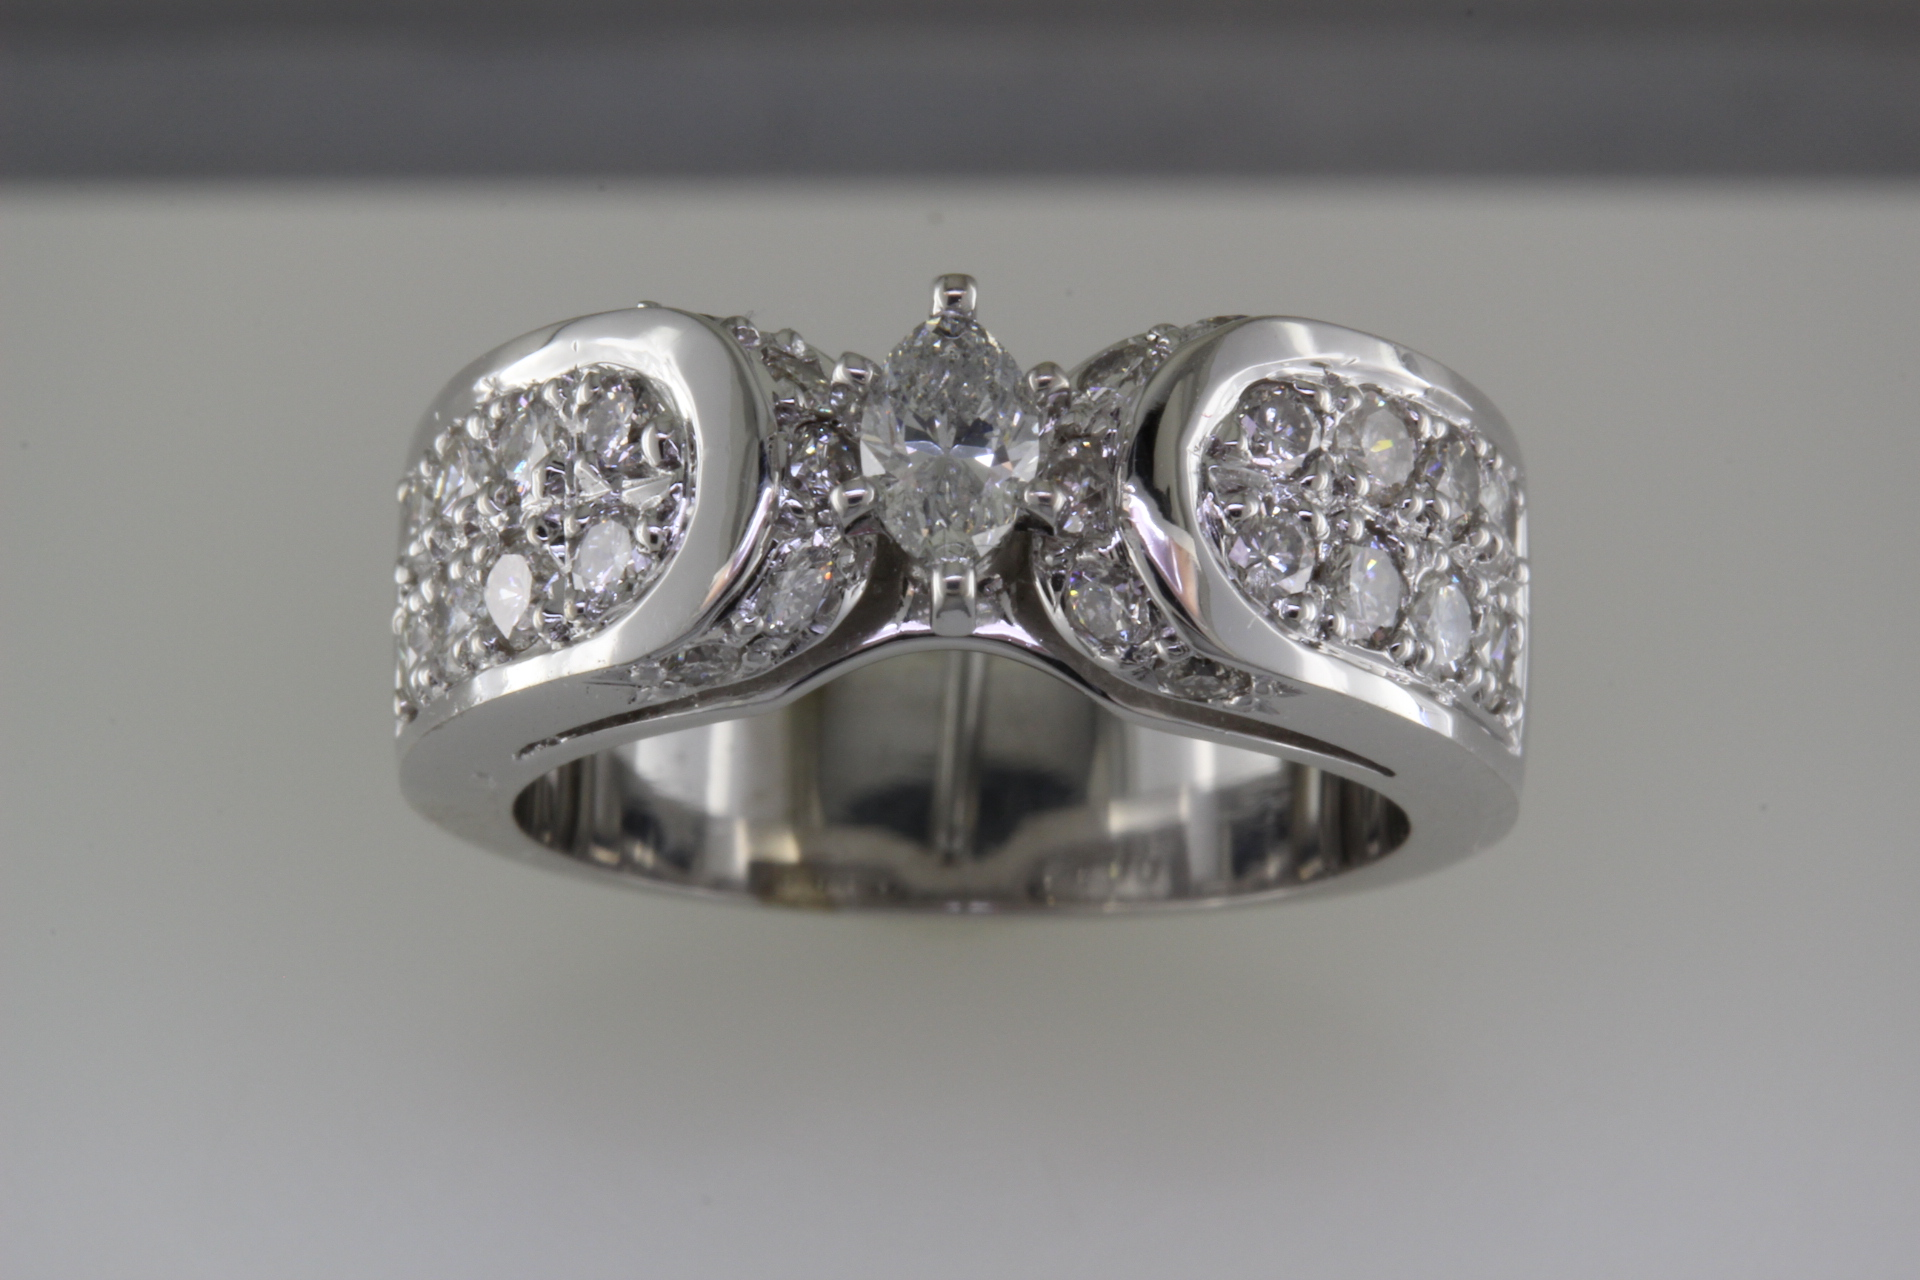 Crafted ring using customer's diamonds.